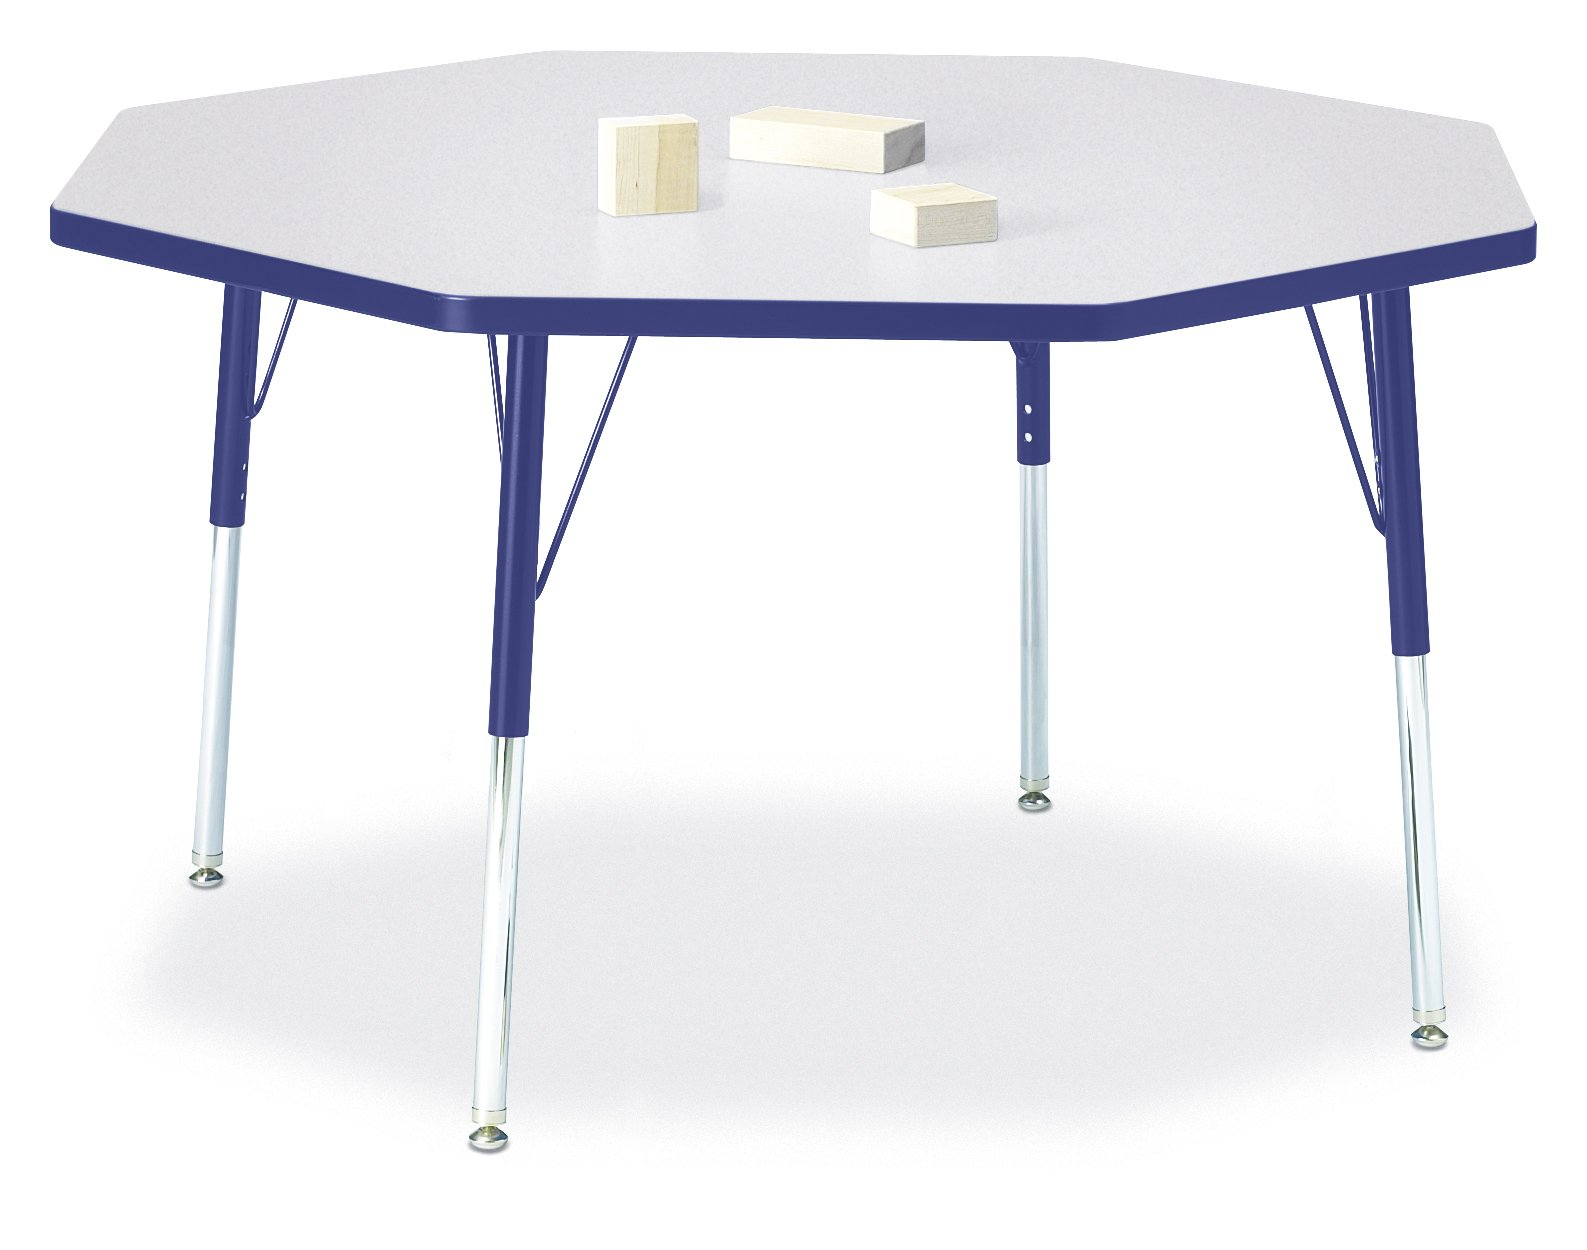 Berries 6428JCA003 Octagon Activity Table, A-Height, 48'' x 48'', Gray/Blue/Blue by Berries